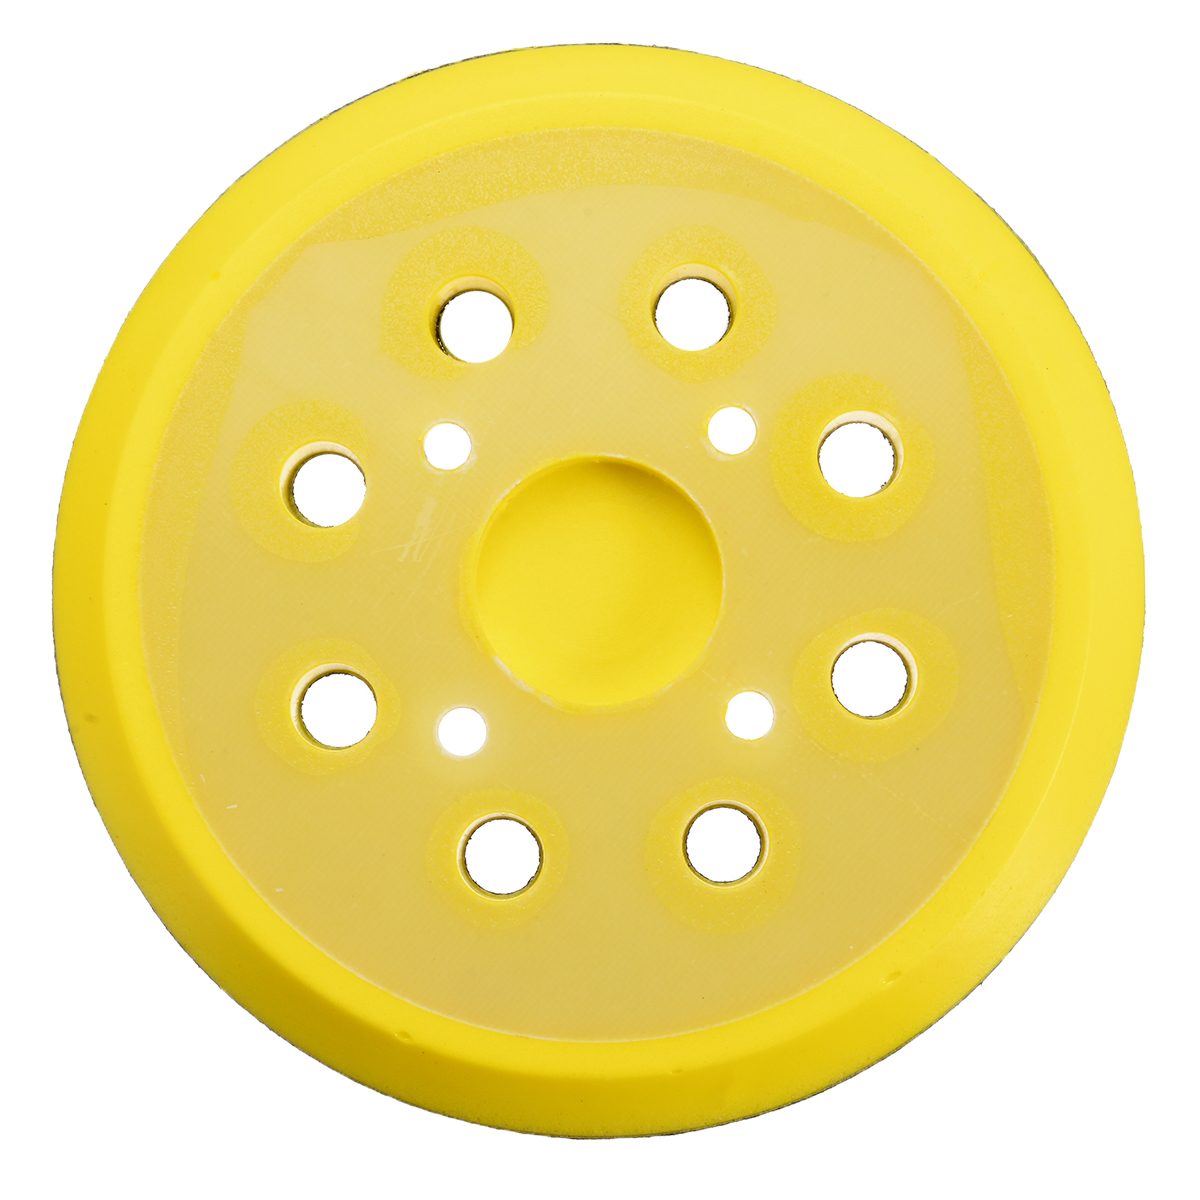 Image 2 - 5 Inch 8 Hole 125mm Back up Sanding Pad 4 Nails Hook and Loop Sander Backing Pad for Electric Grinder Power Tools Accessories-in Abrasive Tools from Tools